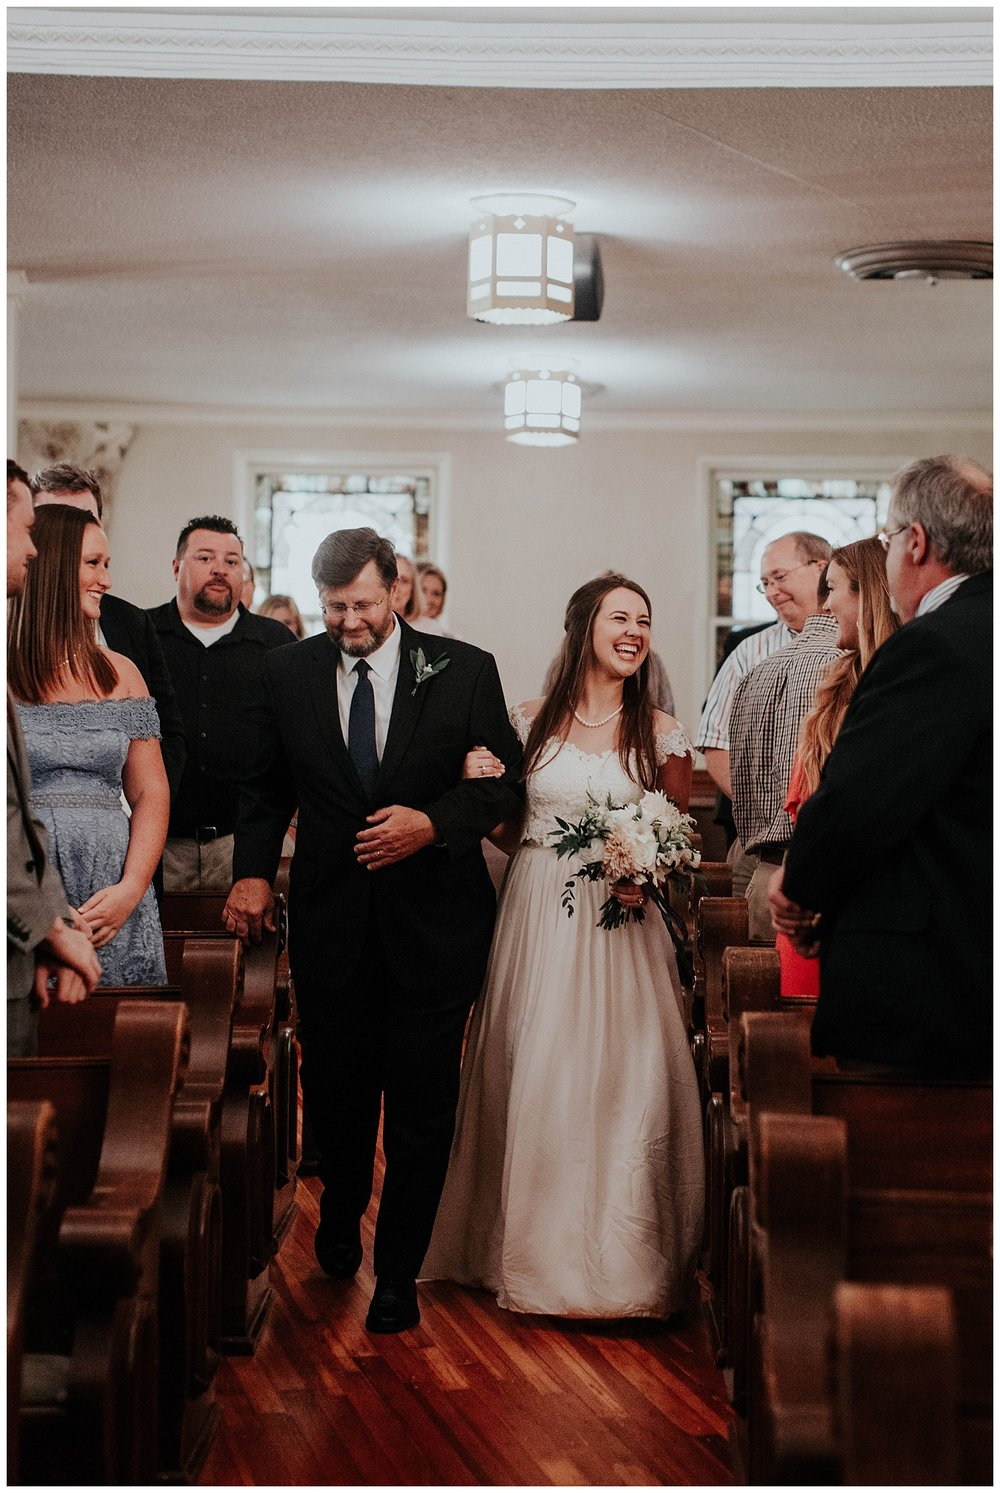 Madalynn Young Photography | Sarah Catherine + Will | Bridge Street Gallery and Loft | Atlanta Wedding Photographer_0372.jpg